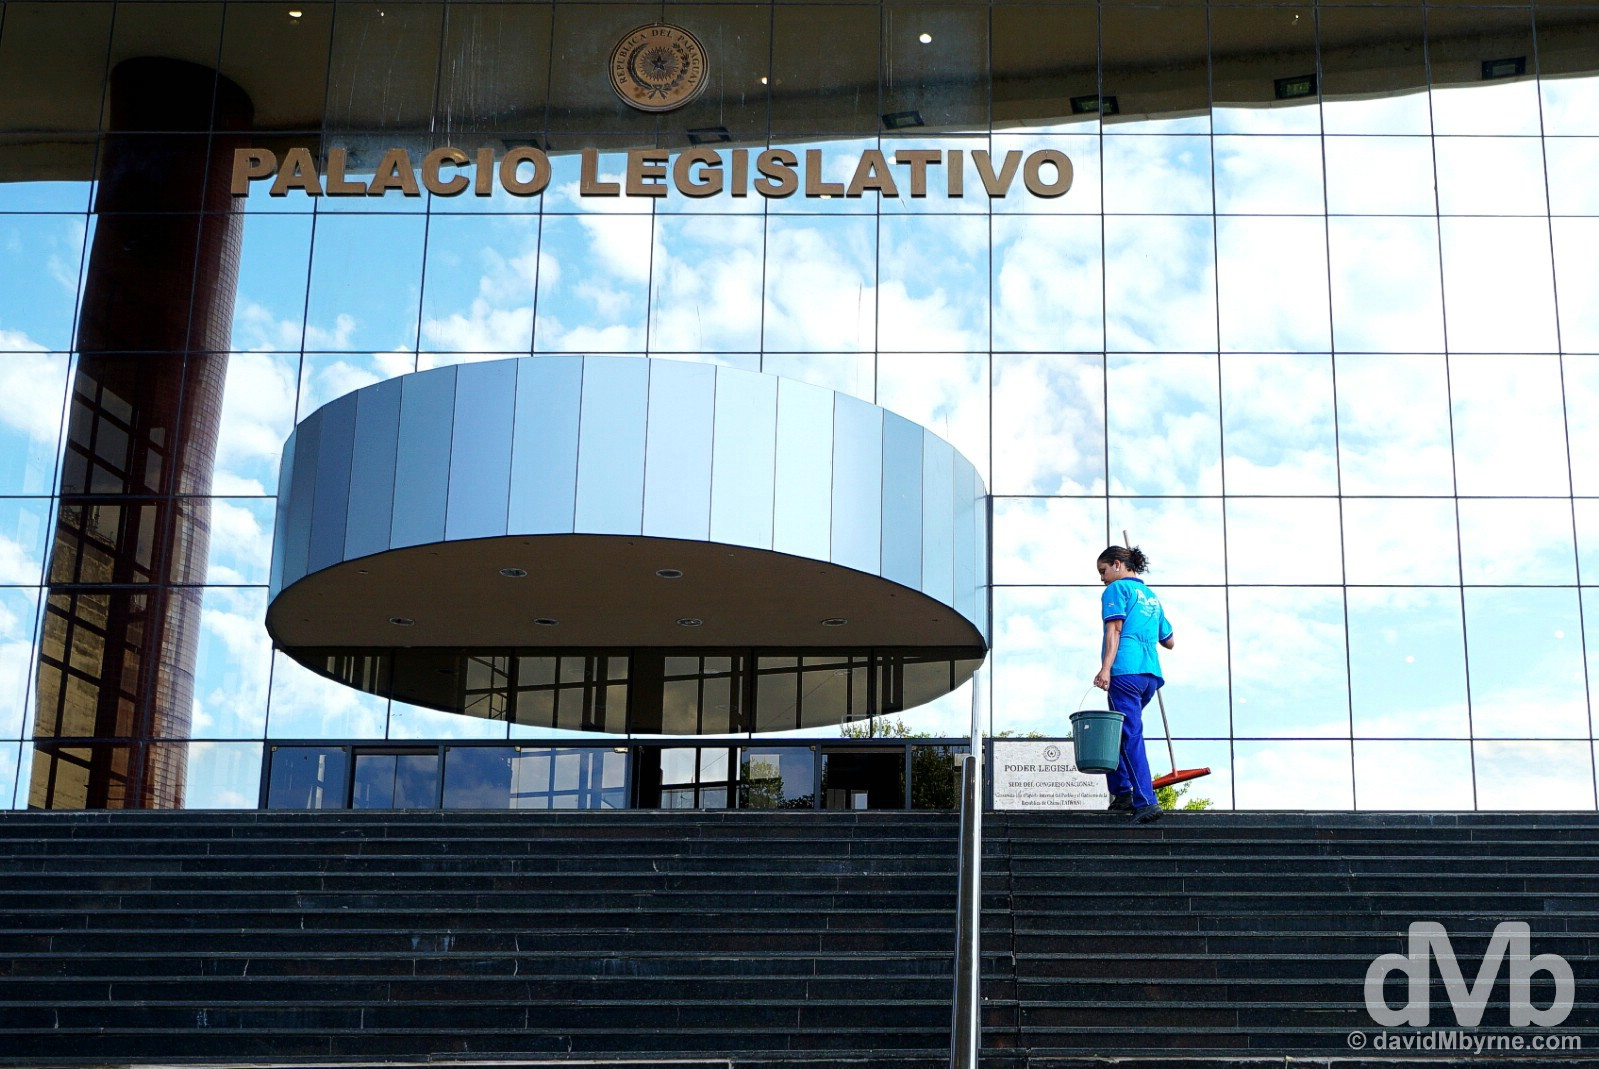 Cleaning the steps of the Palacio Legislativo in Asuncion, Paraguay. September 9, 2015.